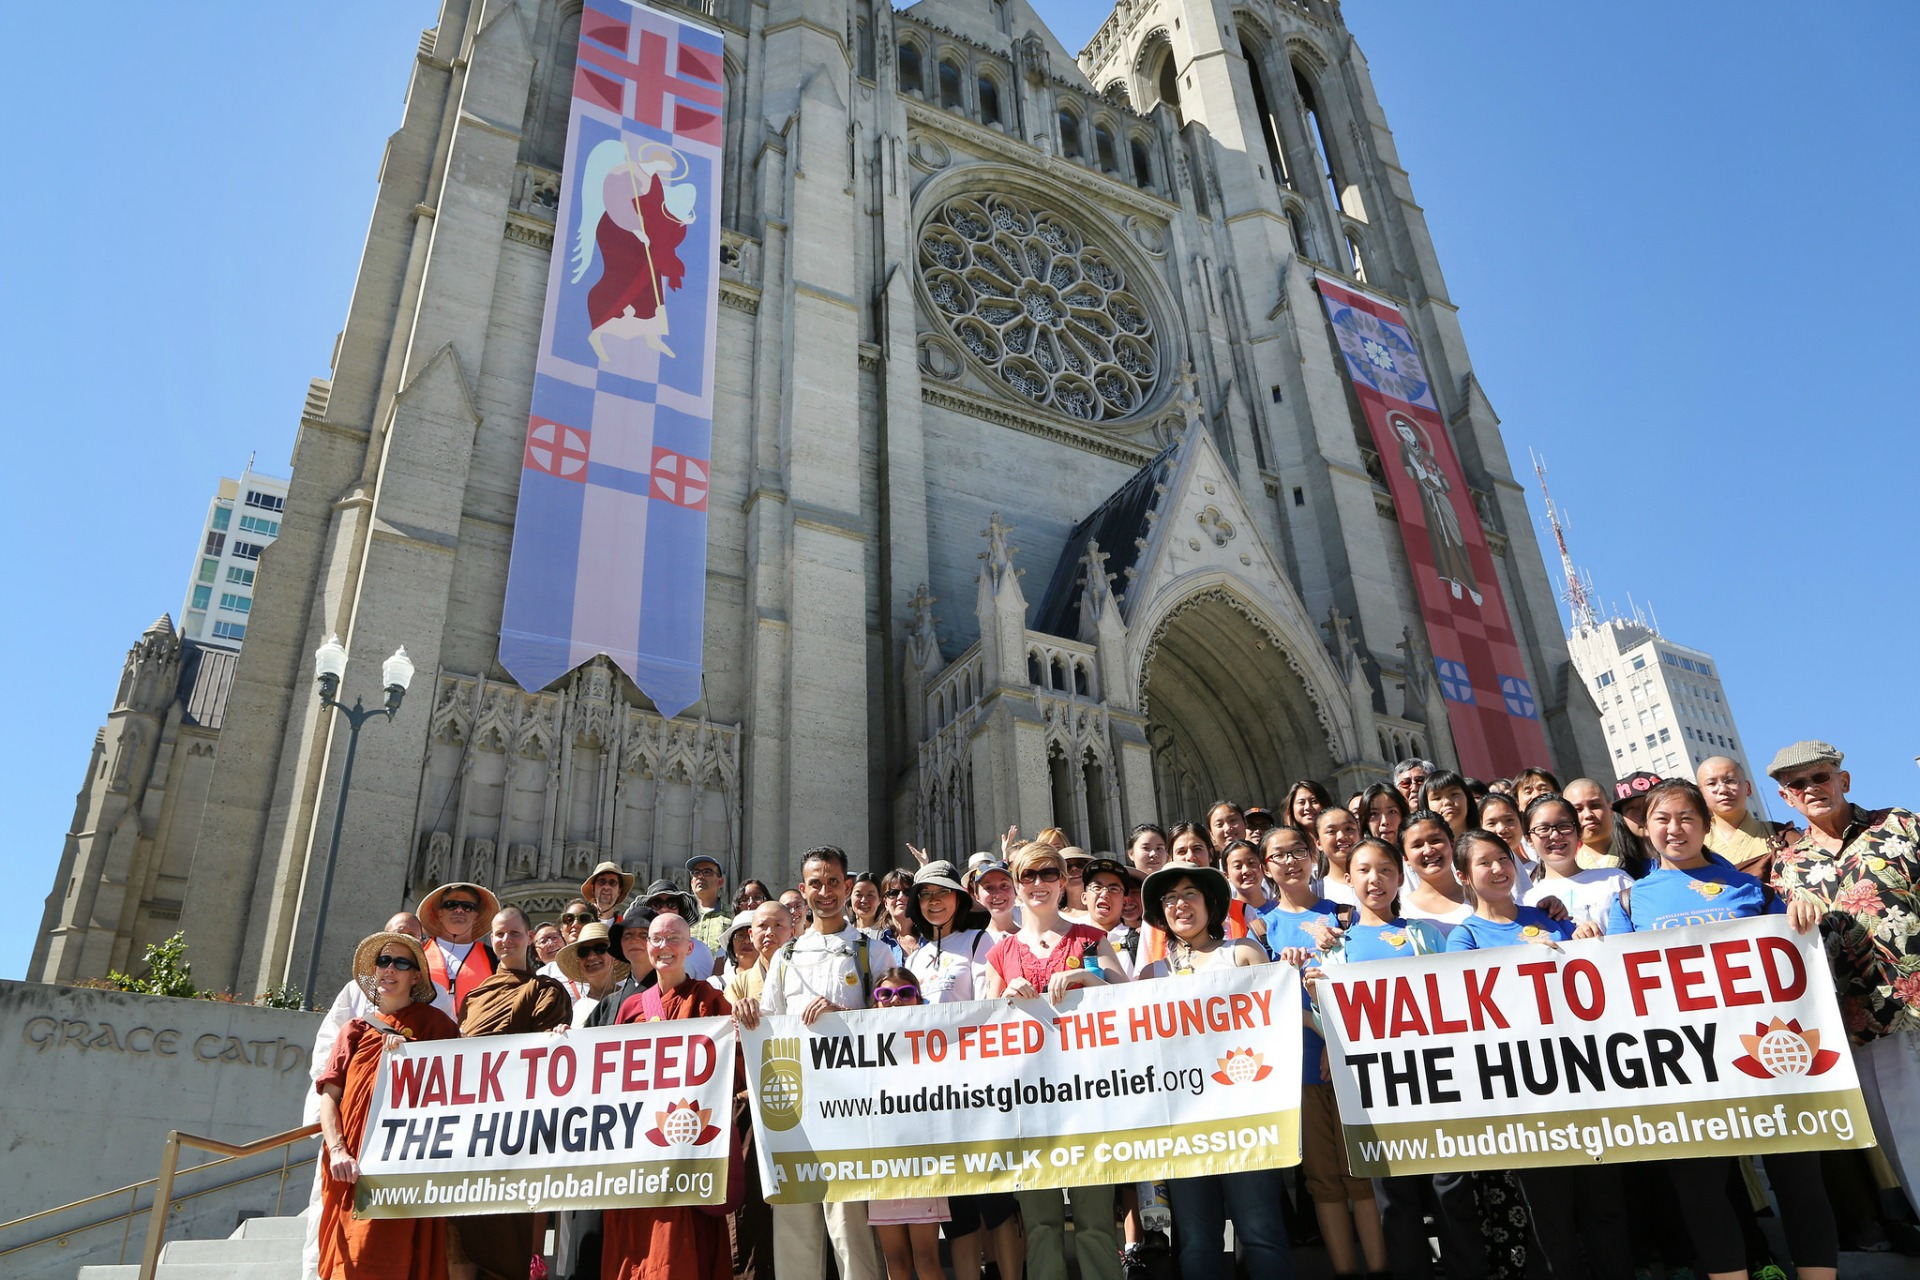 Last year's Walk to Feed the Hungry in front of Grace Cathedral